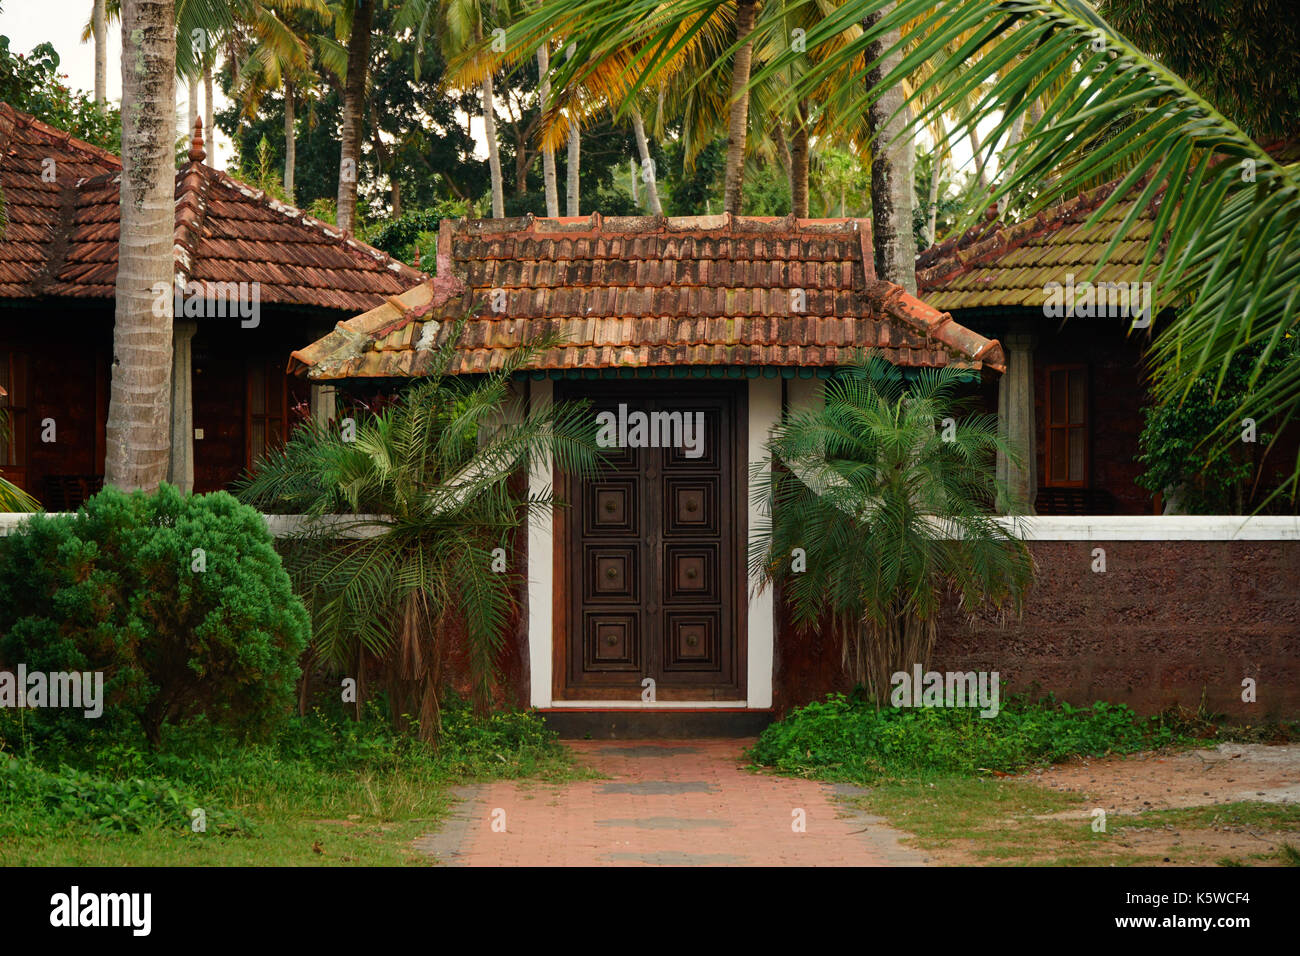 Old Styled Kerala House Entrance   Stock Image